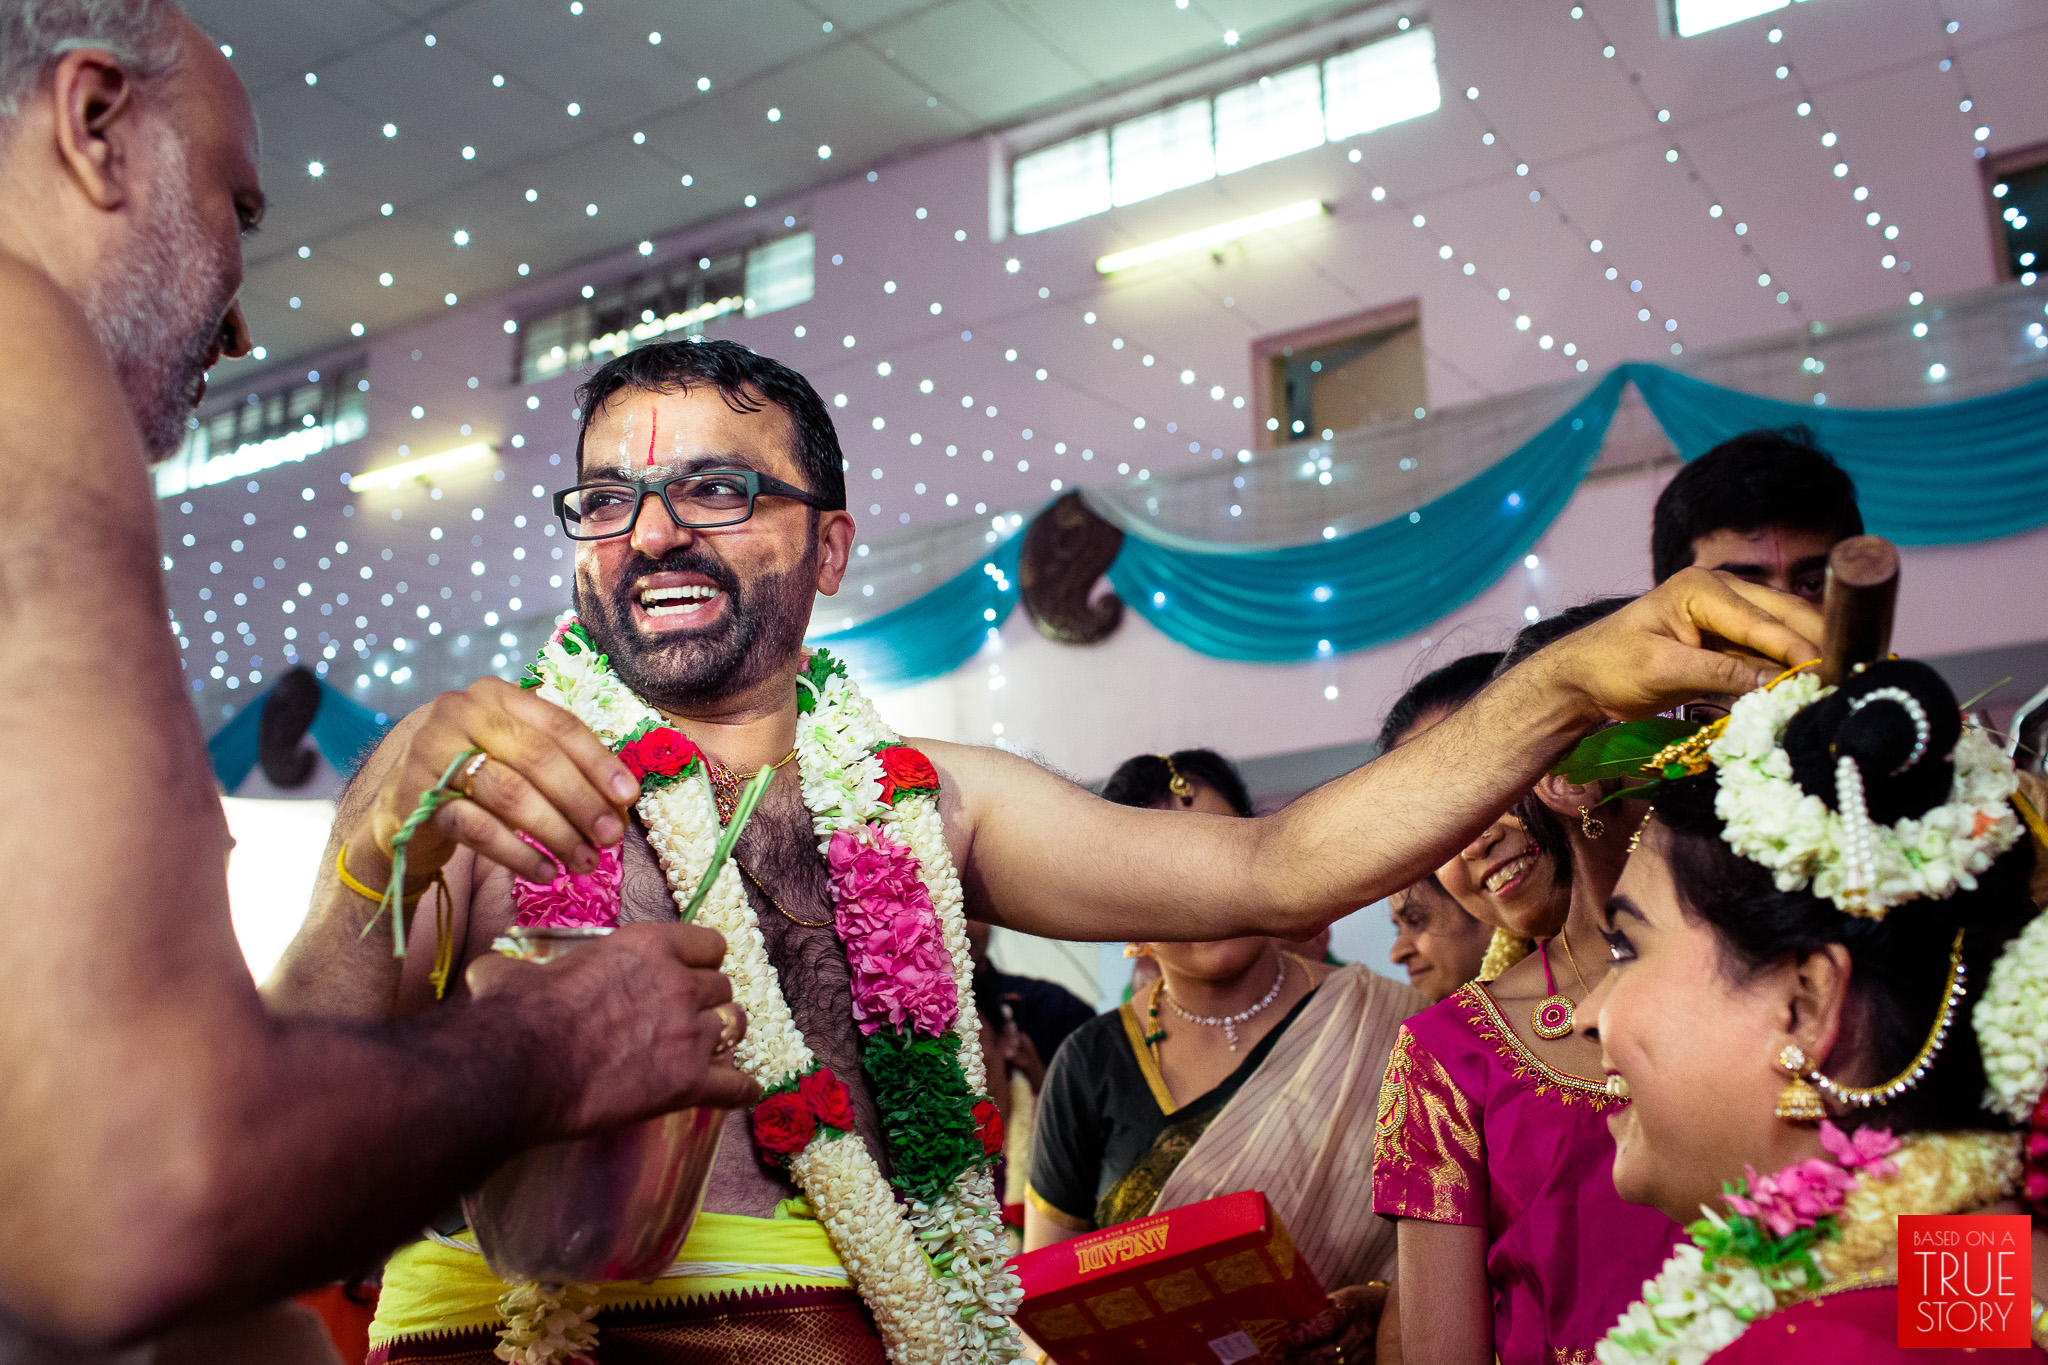 tambrahm-candid-wedding-photographer-bangalore-0038.jpg